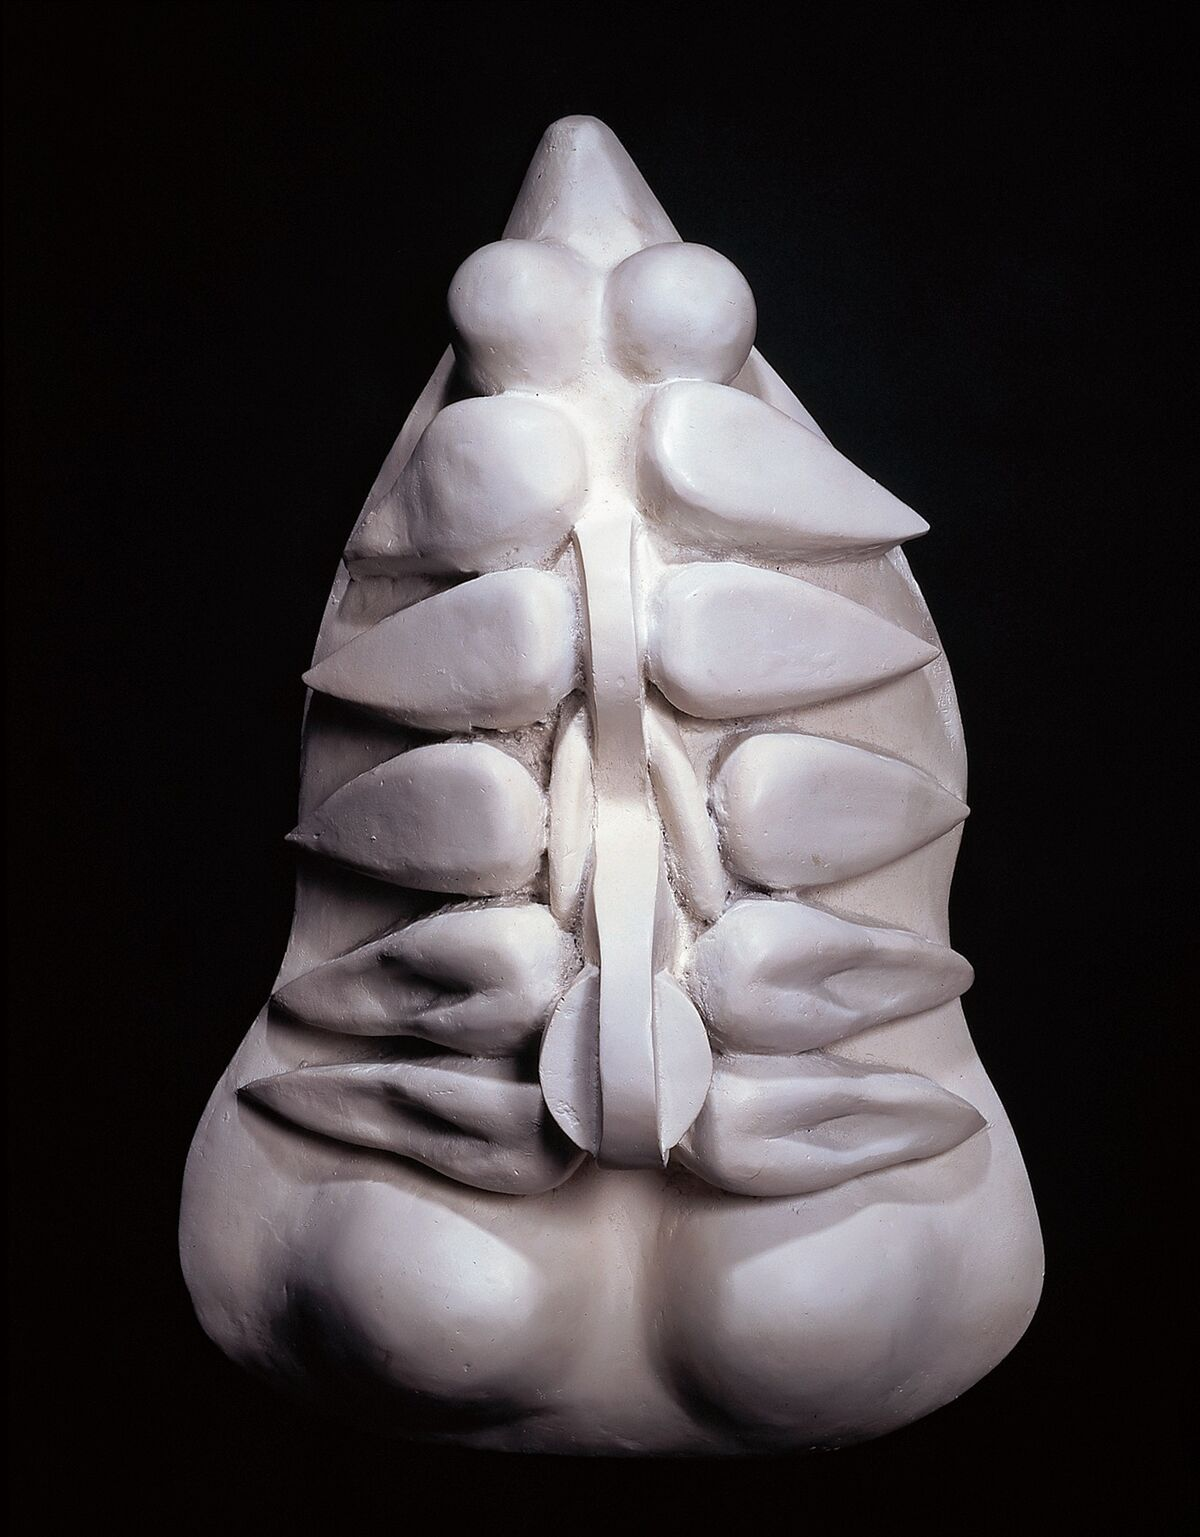 Louise Bourgeois, Torso, Self Portrait, 1963. © 2019 The Easton Foundation / Licensed by VAGA at Artists Rights Society (ARS), NY. Courtesy of The Berardo Collection Museum, Lisbon.